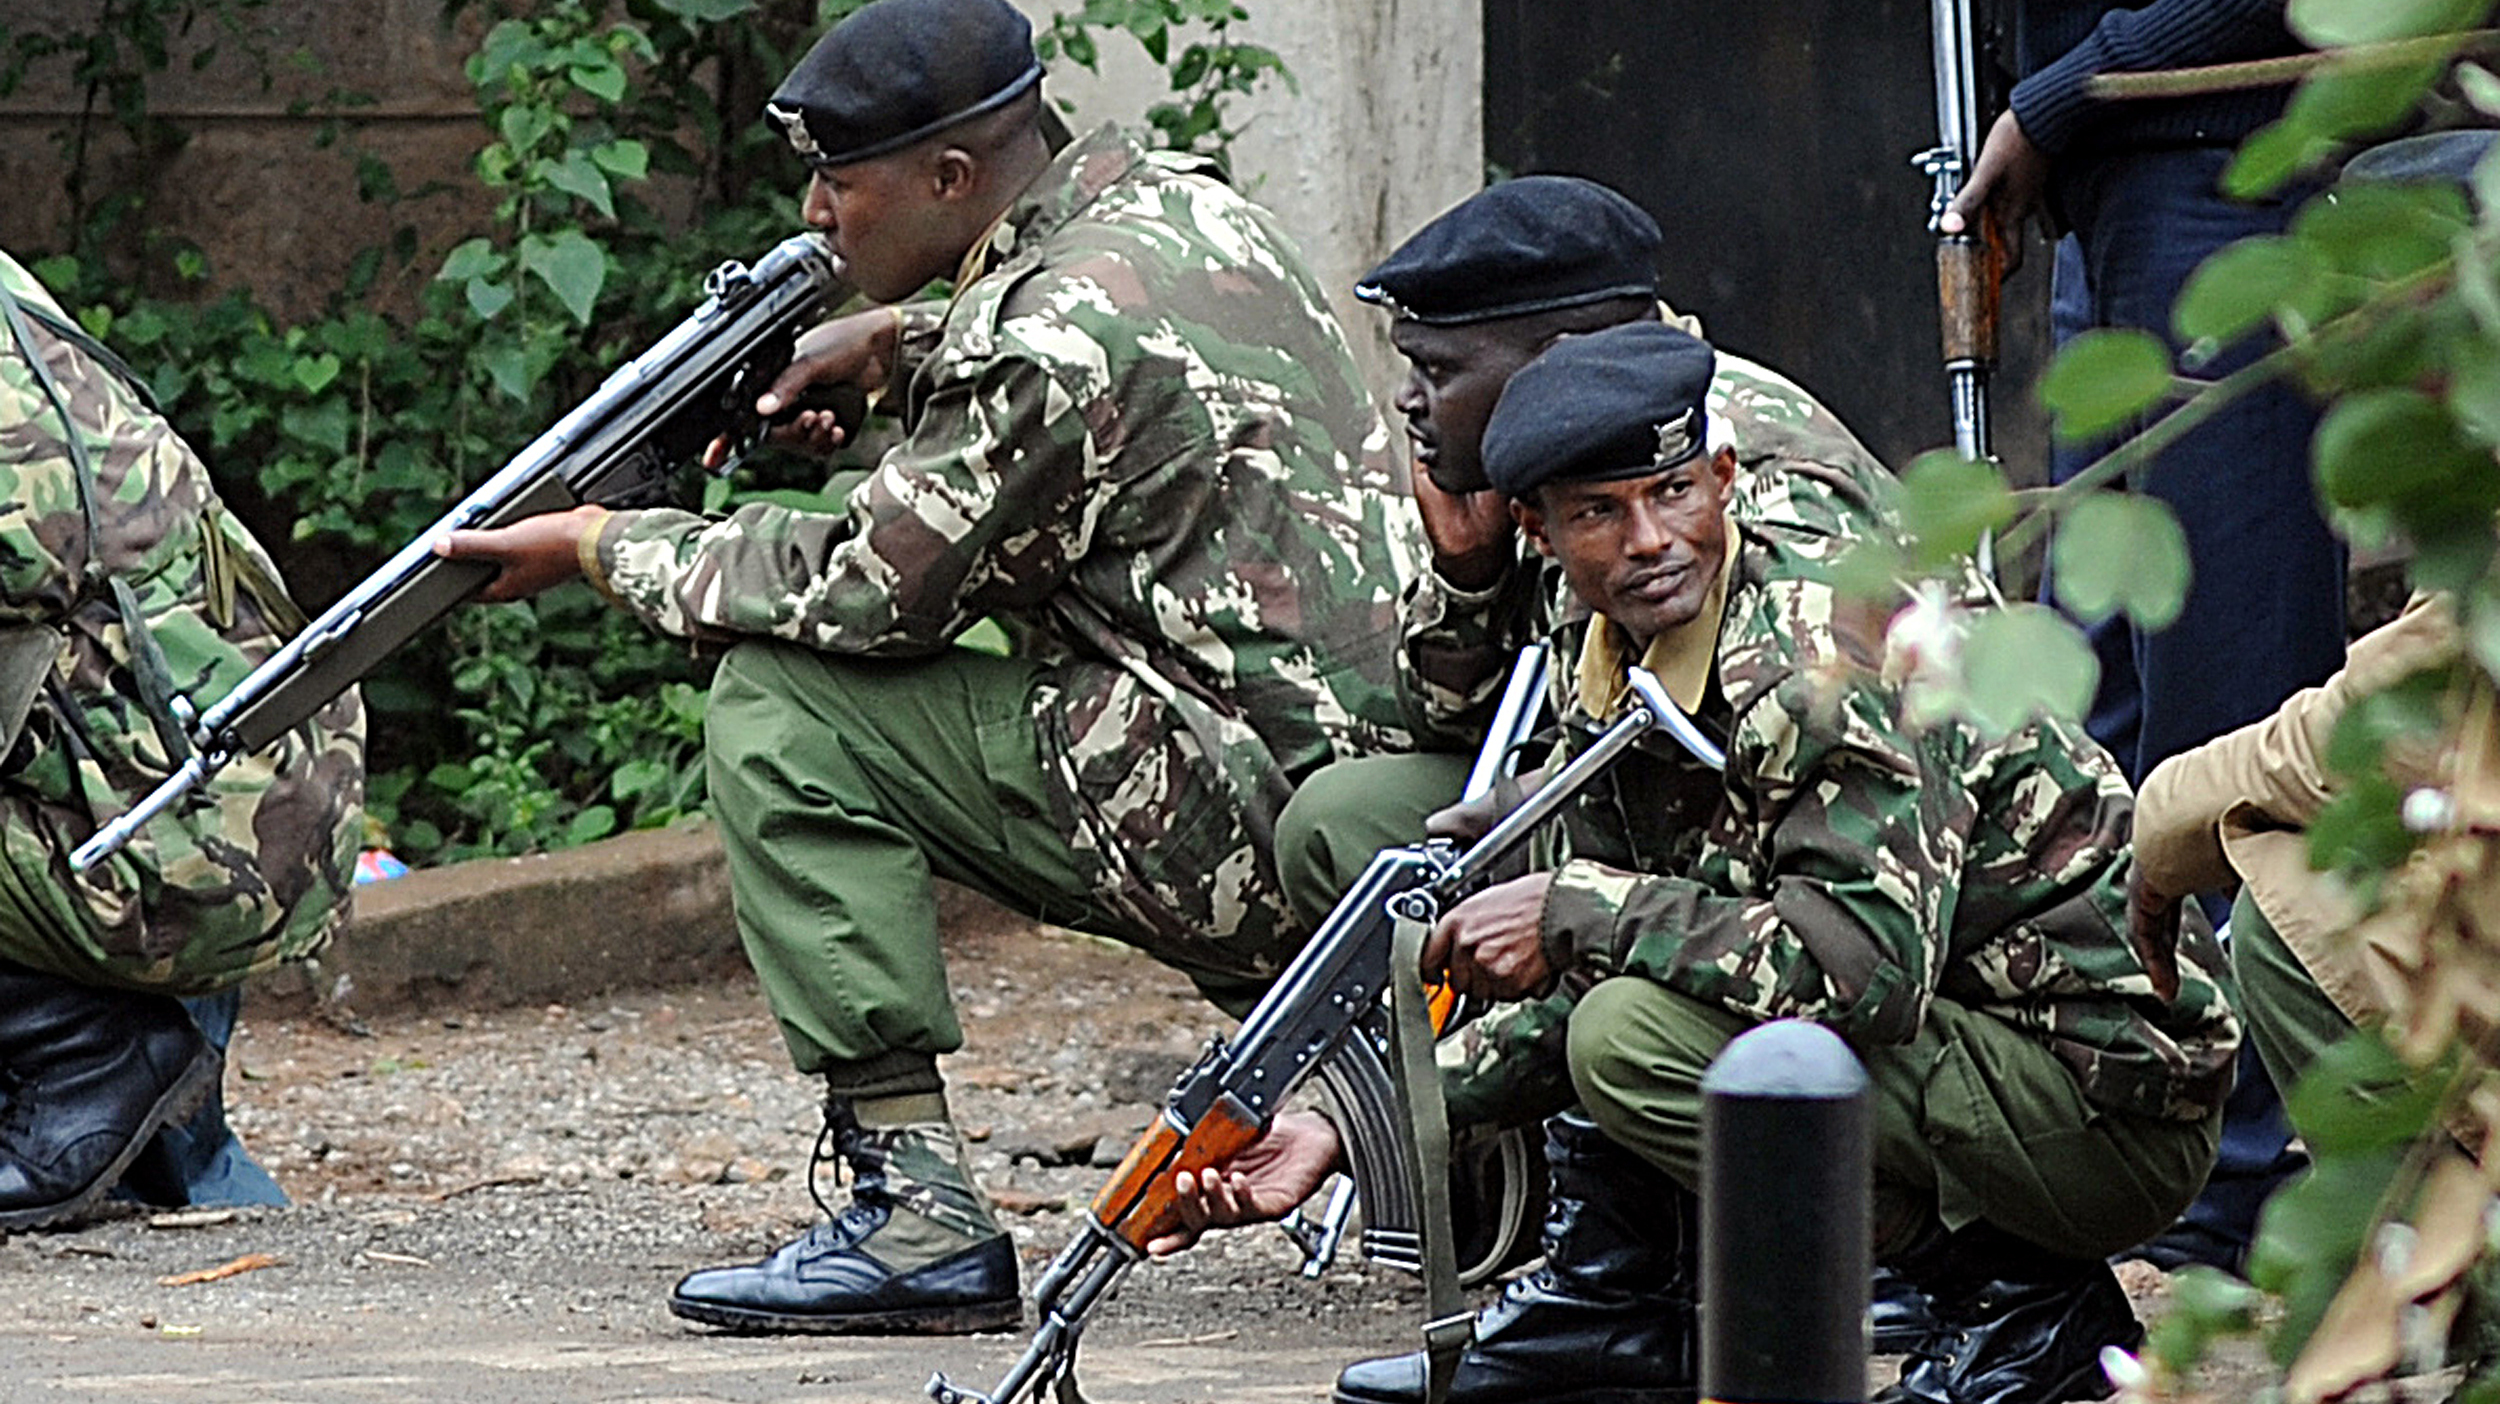 Siege Over, Kenya Has 'Defeated The Monster Of Terrorism'